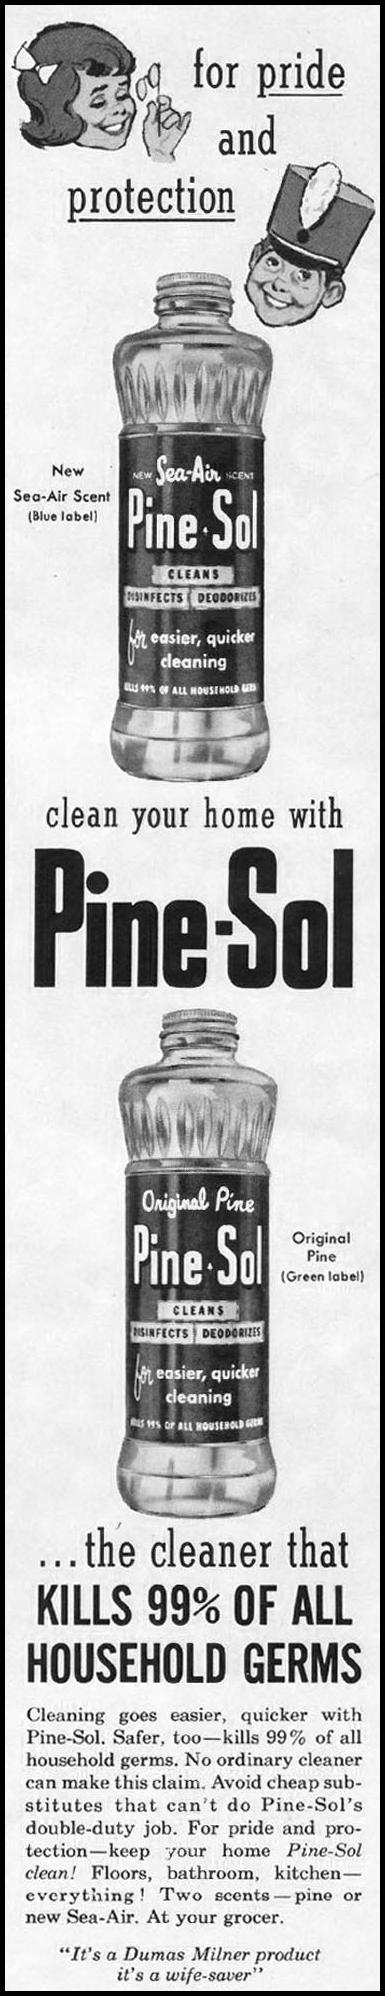 PINESOL CLEANSER LADIES' HOME JOURNAL 06/01/1961 p. 37